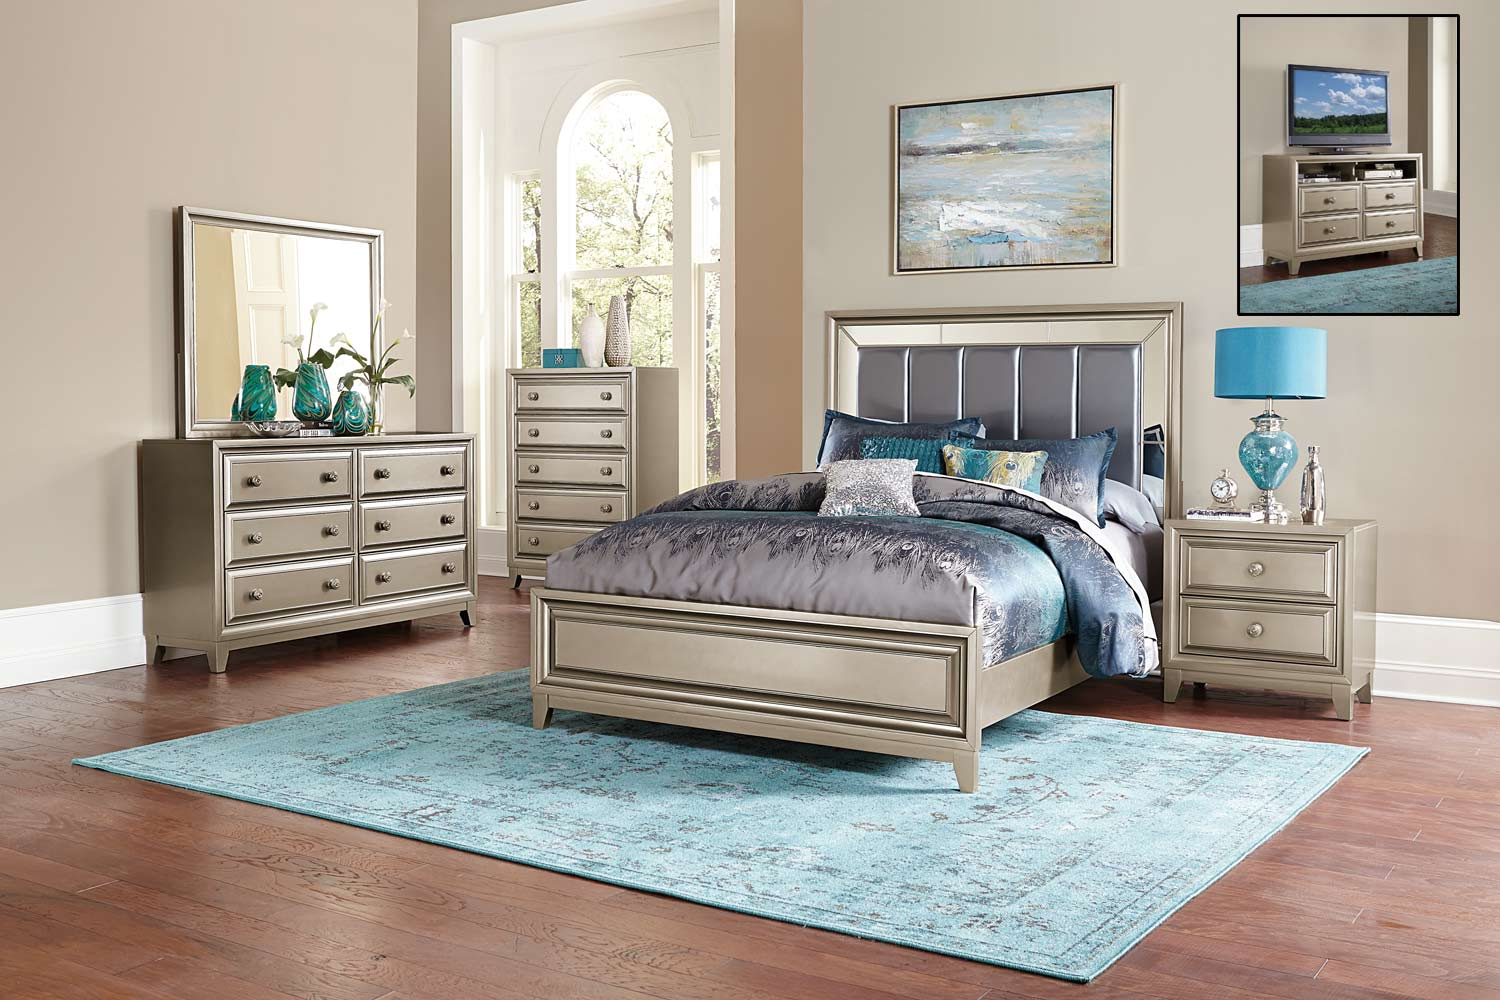 silver bedroom furniture sets photo - 8